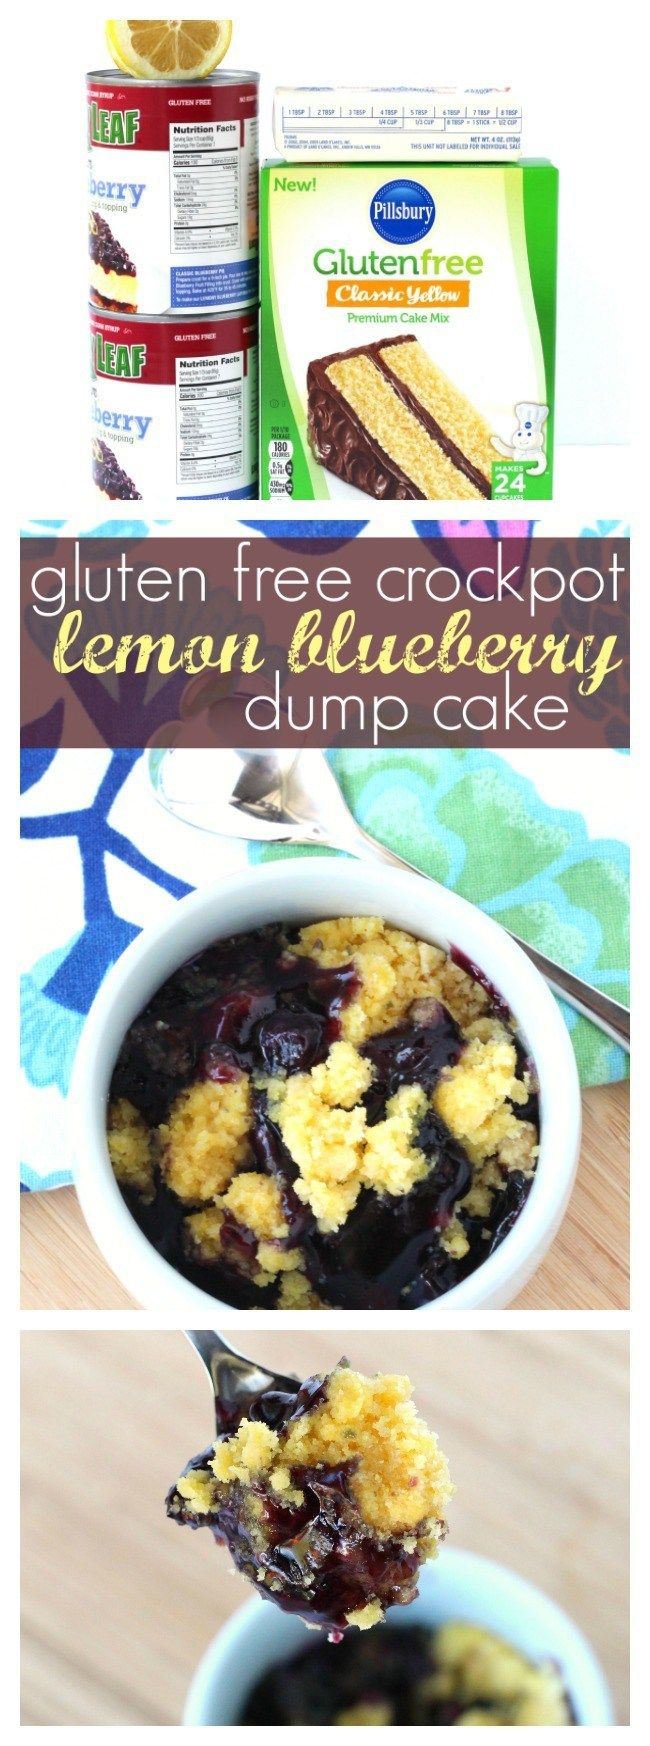 Gluten Free Crockpot Lemon Blueberry Dump Cake | A delicious gluten free slow cooker dessert, made in minutes! #ad